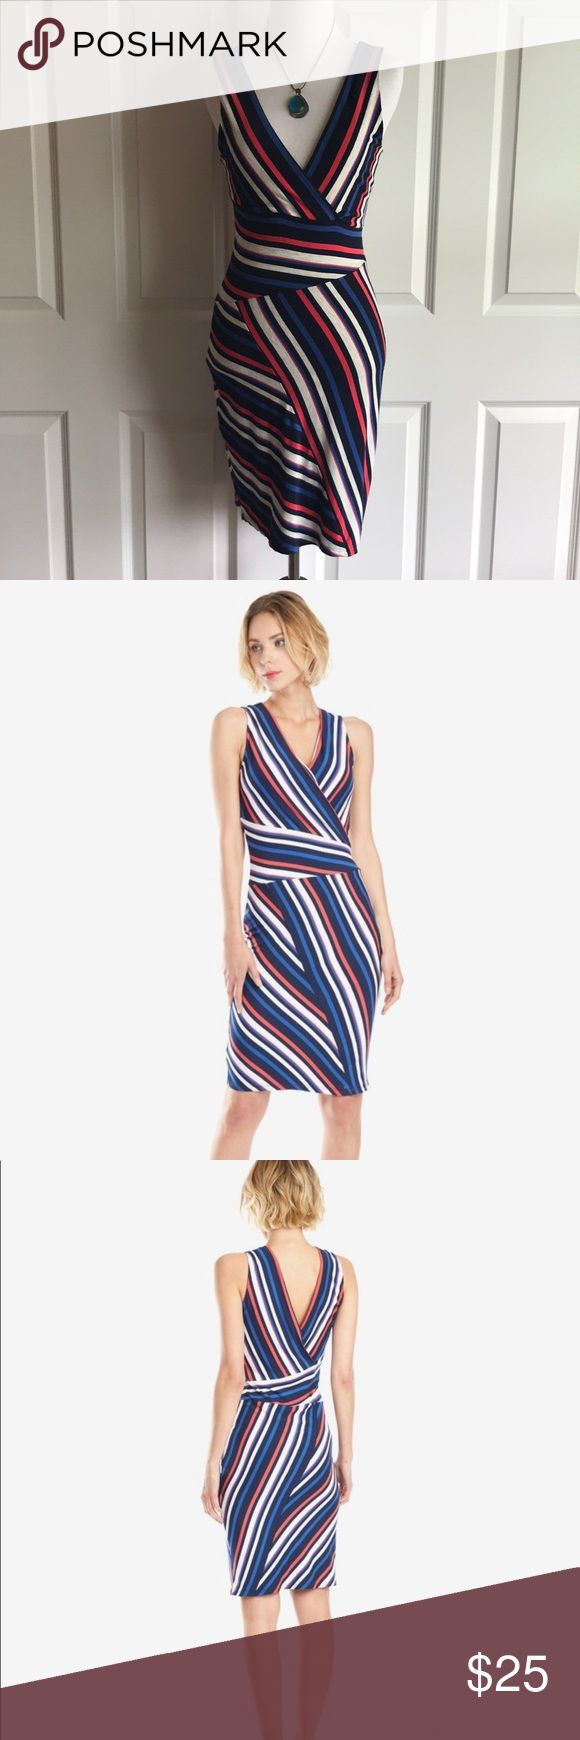 "‼️NEW ITEM‼️ Matty M Striped Bodycon Dress NWT Matty M. Bodycon dress with plunging neck and back. Sleeveless. Mixed stripe fabric in navy, royal blue, oatmeal, and red. Materials: 92% rayon / 8% spandex—soft like tee shirt material. Measurements: bust is 14"", waist is 12.5"", and total length is 35"". NWT. Bought from a PFF but way too small. Matty M Dresses Midi"